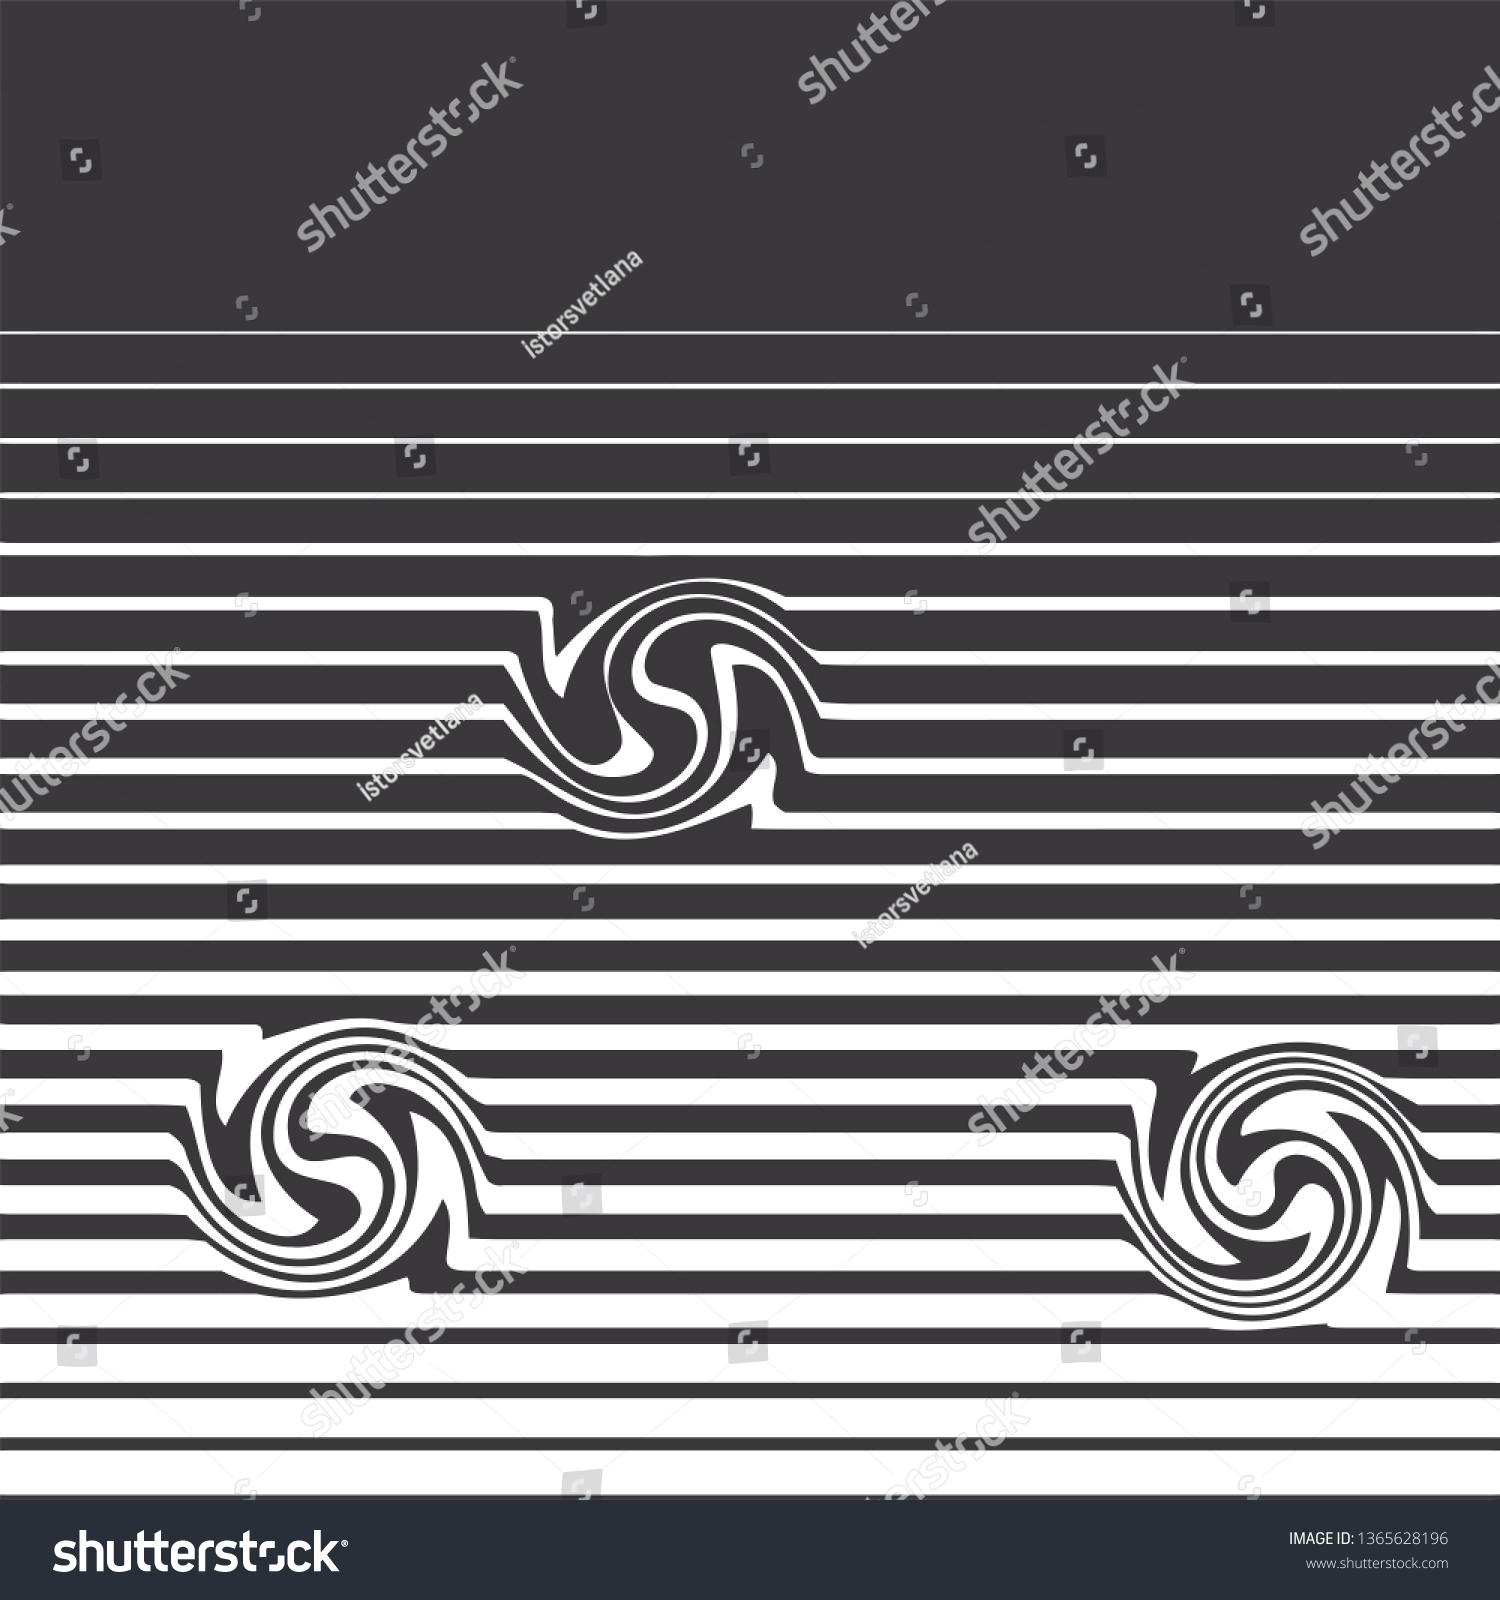 Black and white background lines of different widths with optically abstract curved elements vector